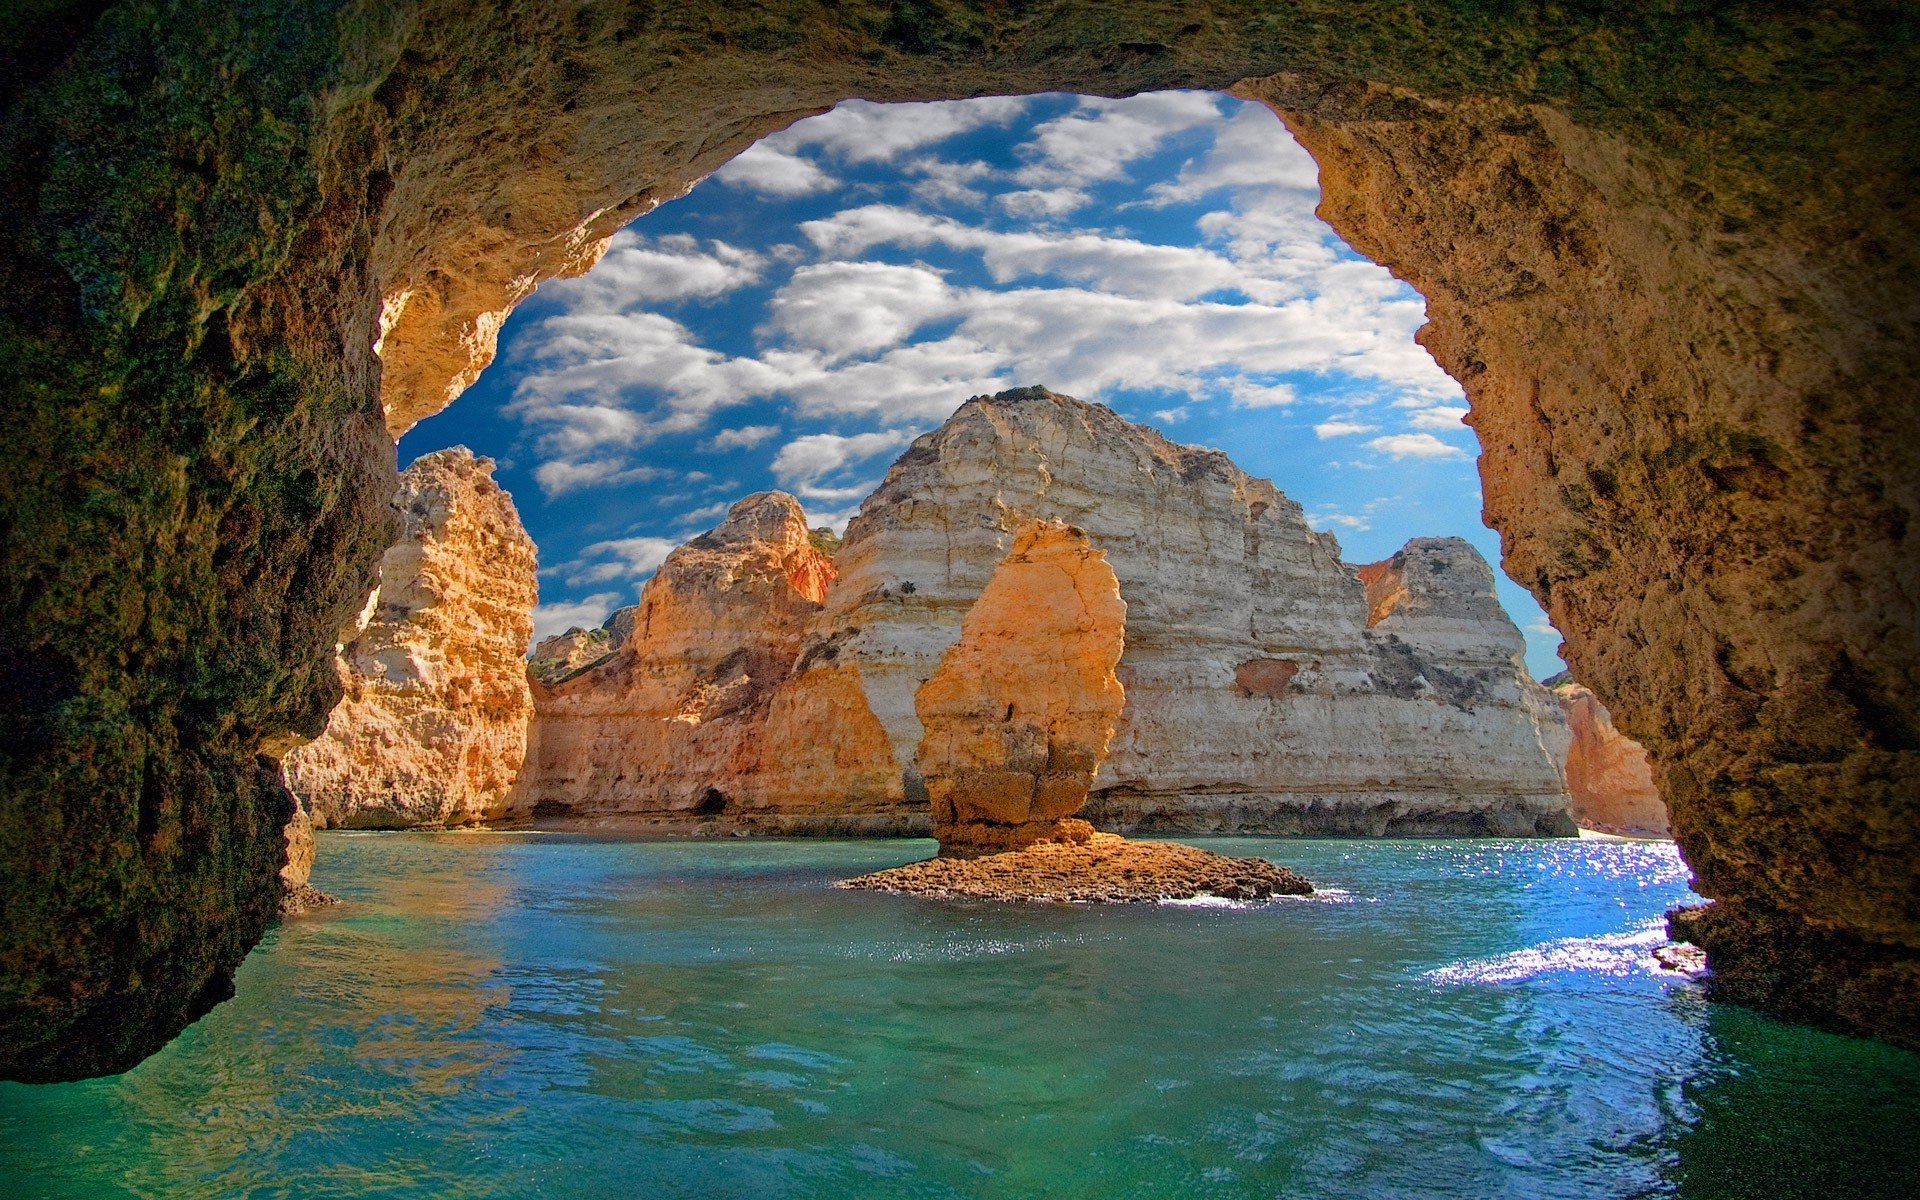 Ocean Cave in Portugal HD Wallpaper Background Image 1920x1200 1920x1200